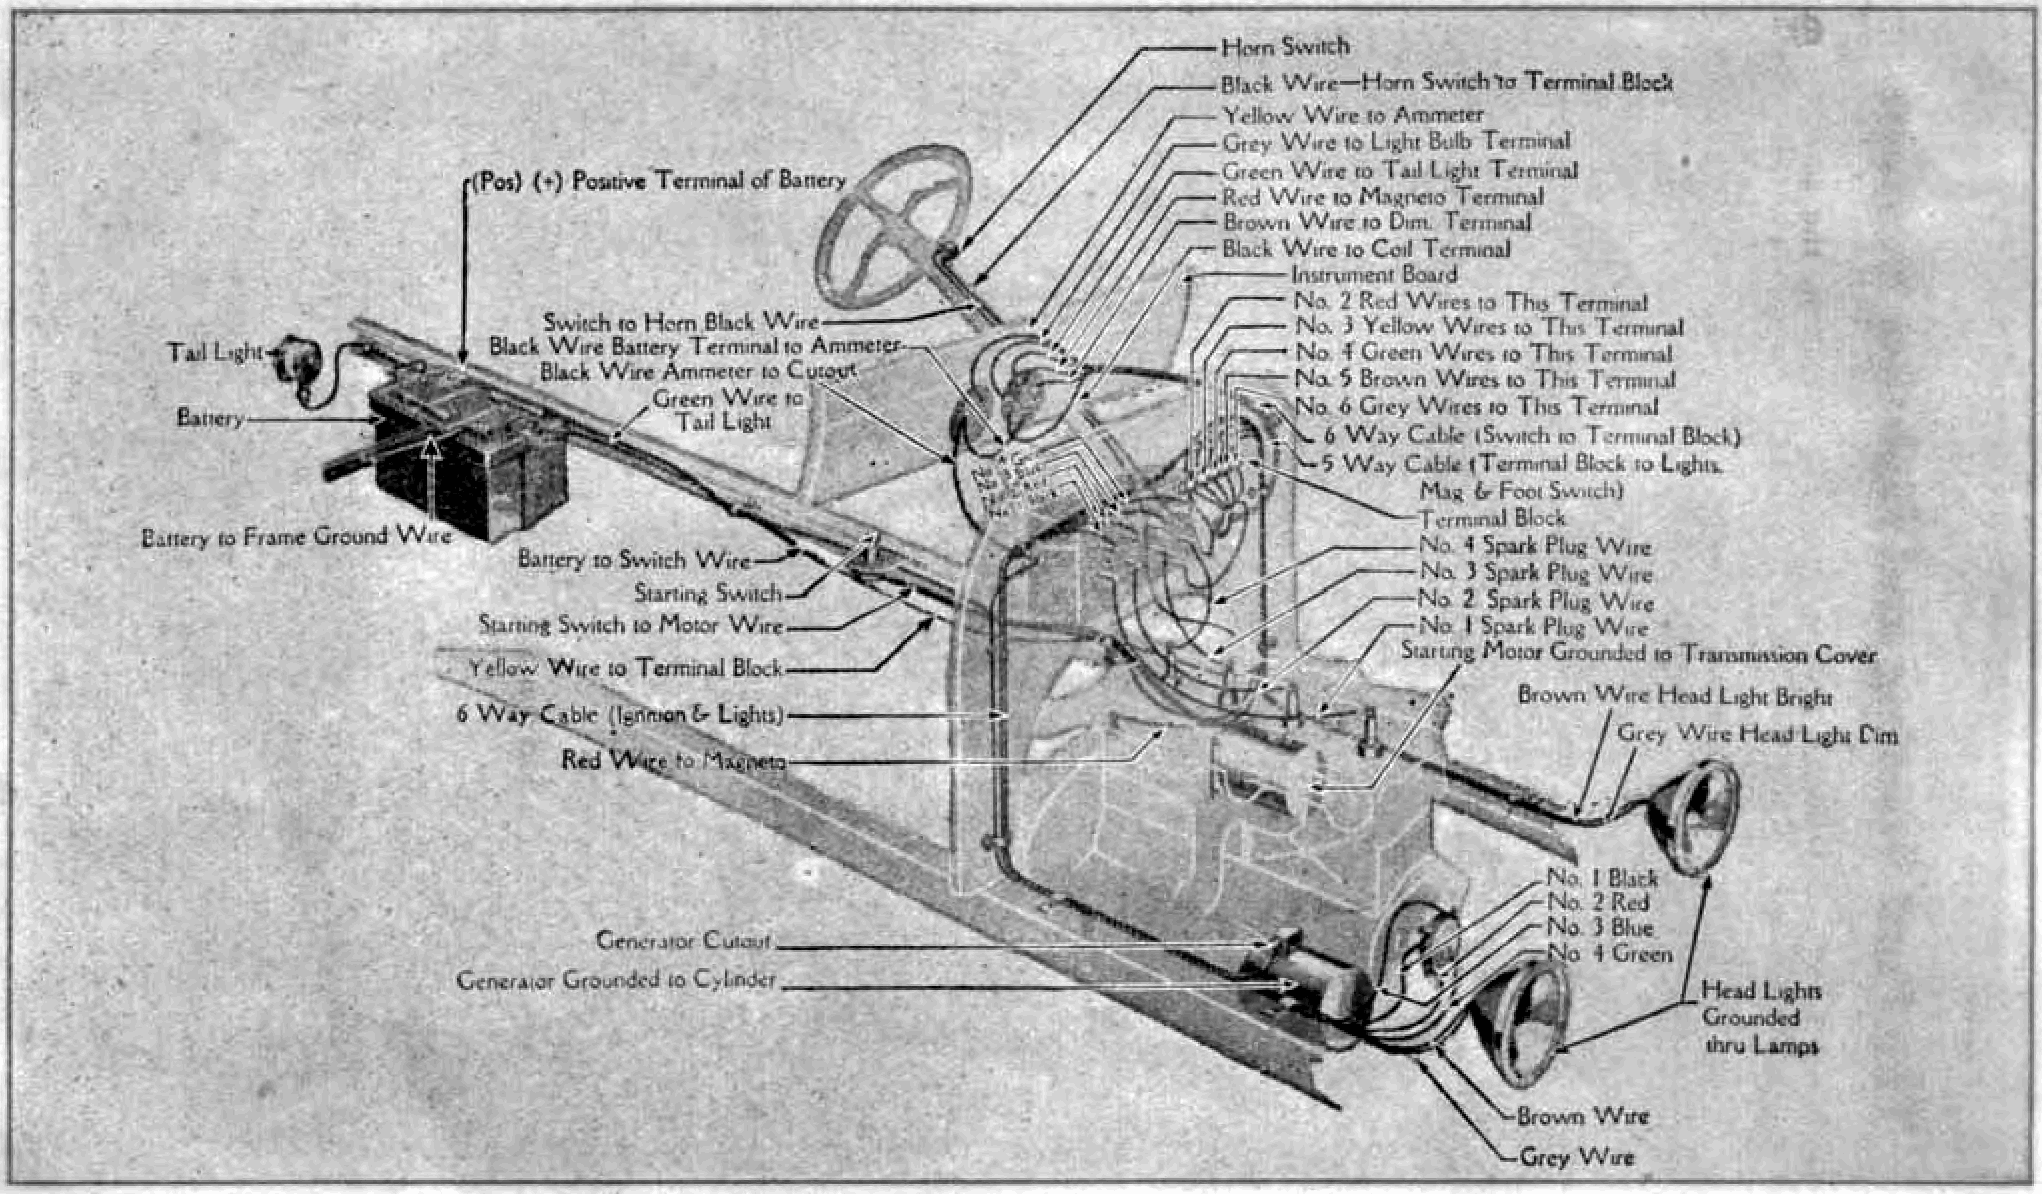 File:Ford model t 1919 d055 wiring diagram of cars equipped with a starter.